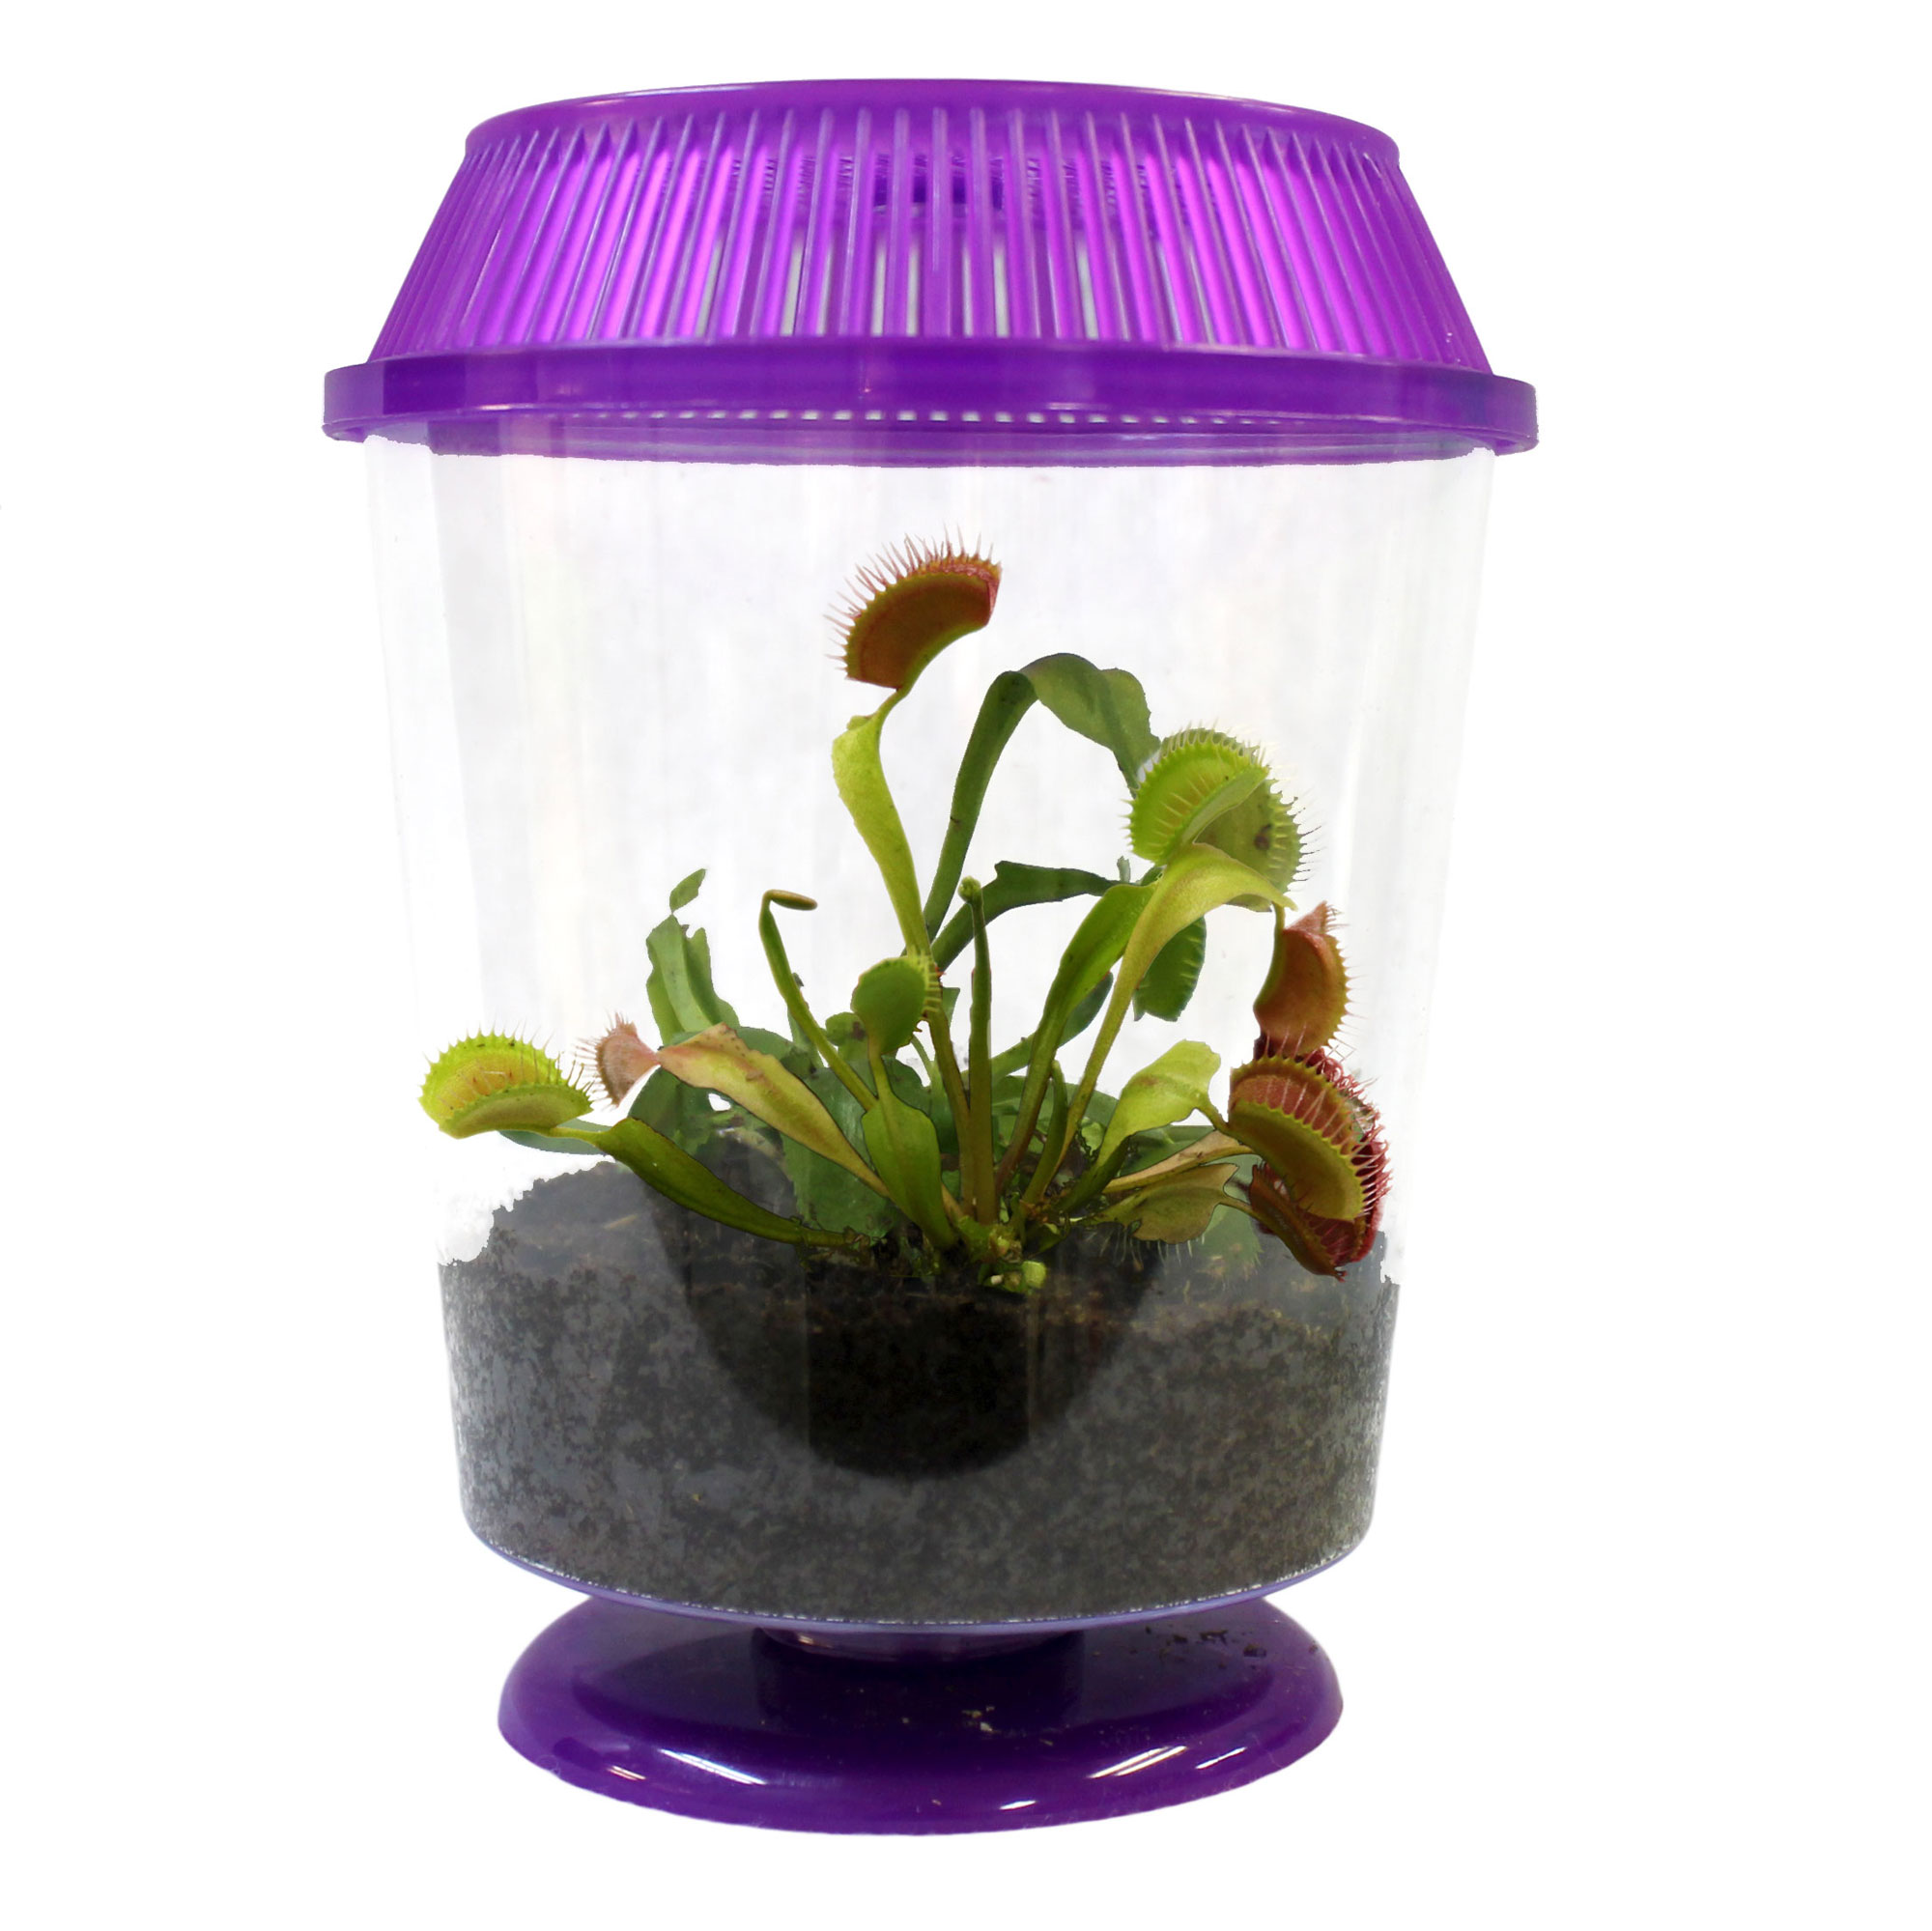 Venus Flytrap Fun Facts. Venus Flytrap Fun Facts. Fun Facts About ...